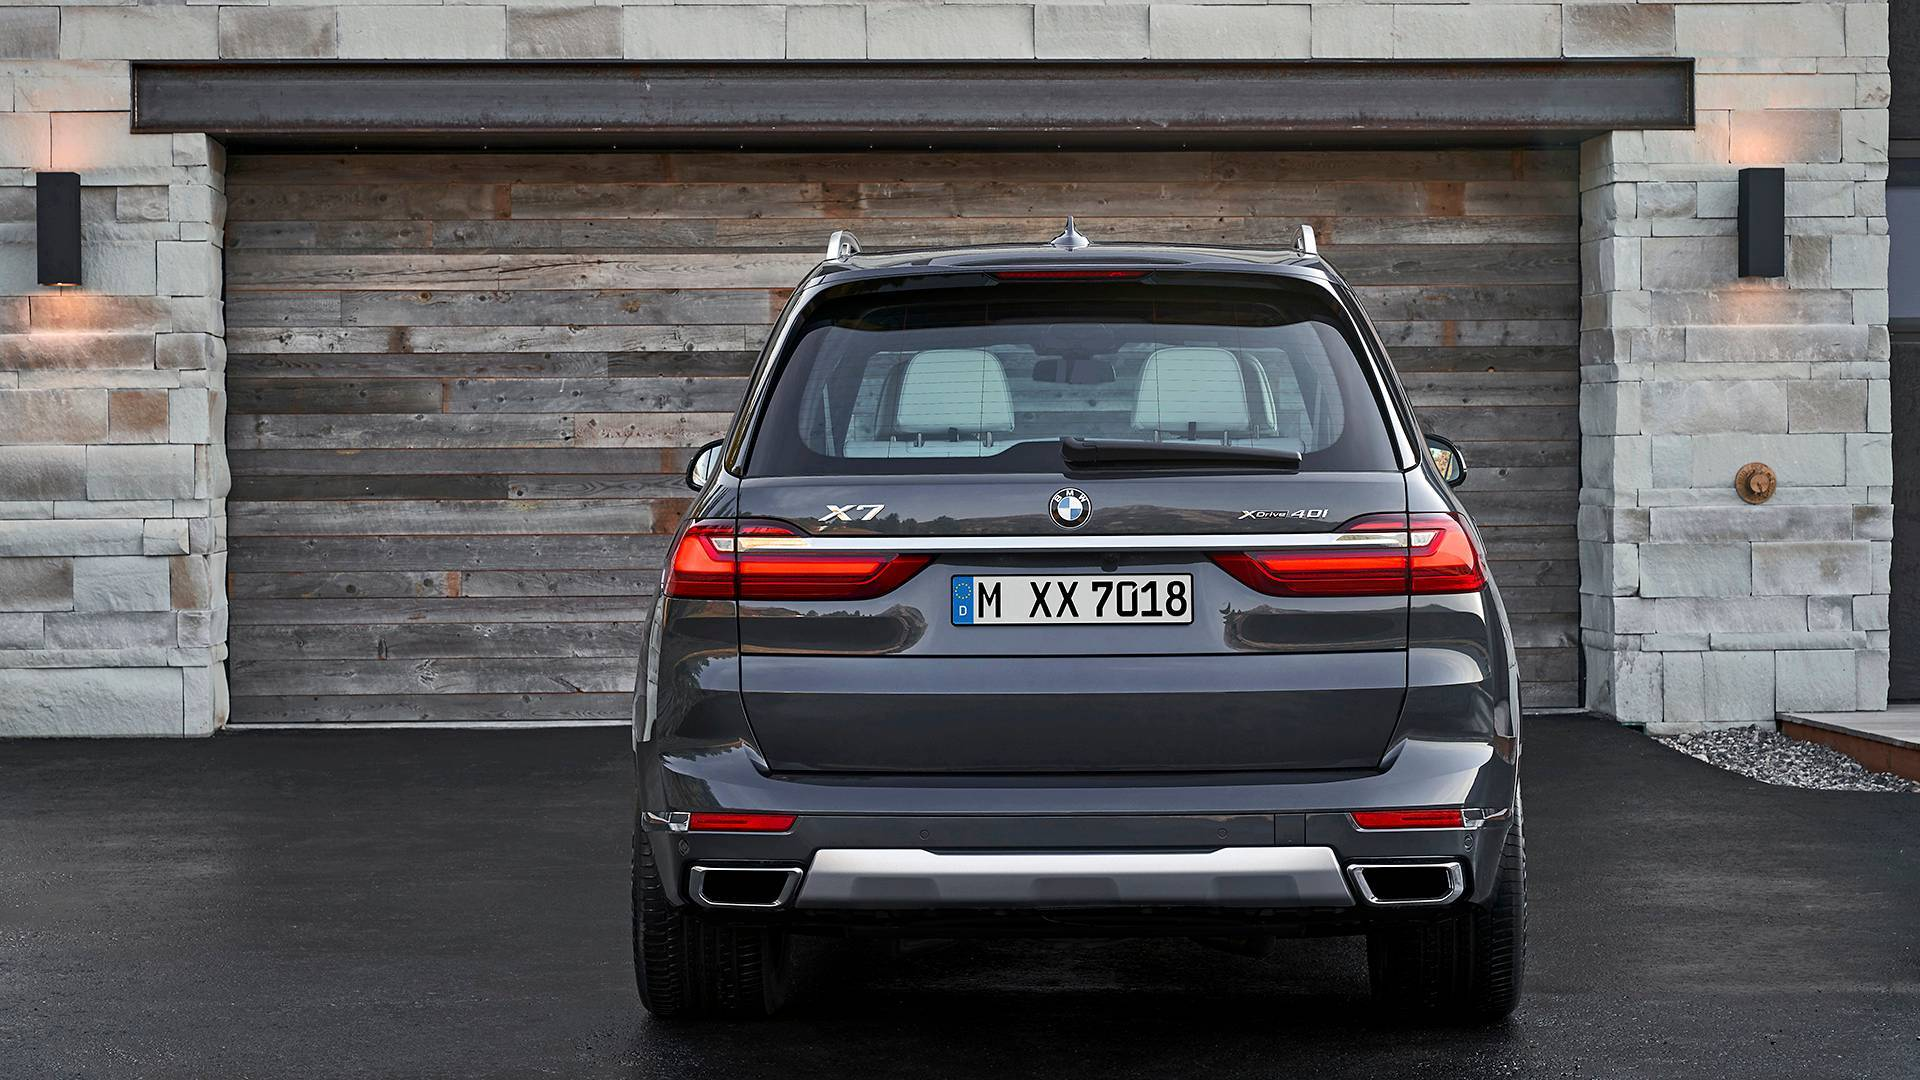 2019-bmw-x7-so-sanh-3.jpg